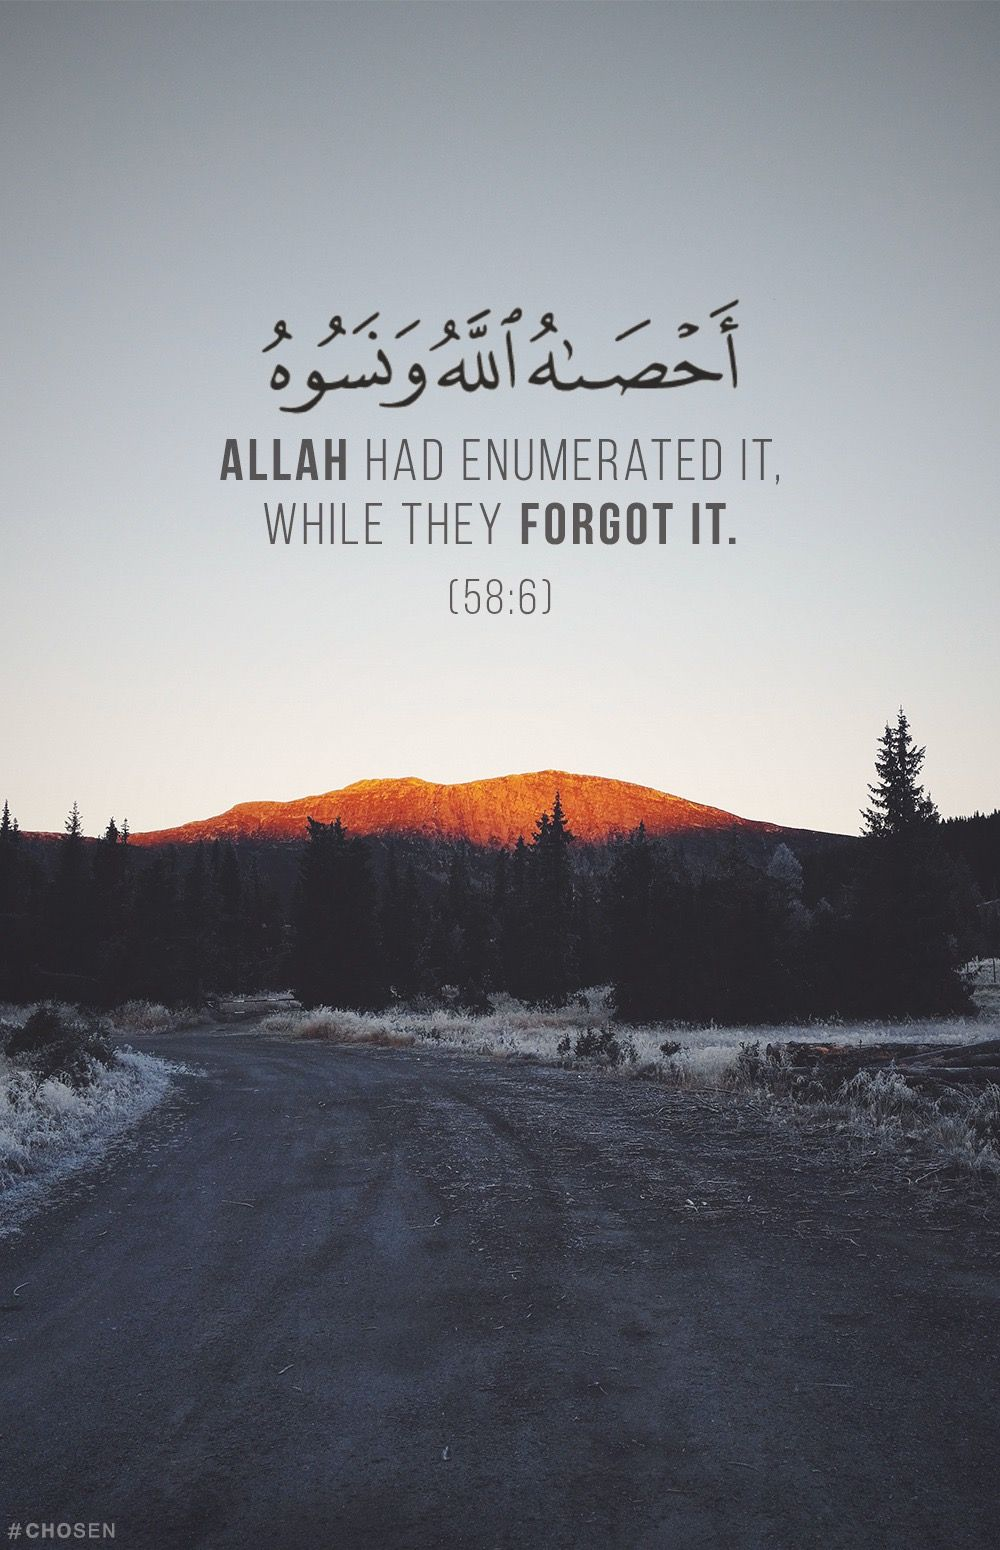 Islamic Quotes Wallpaper Quran Verse 1000x1550 Wallpaper Teahub Io